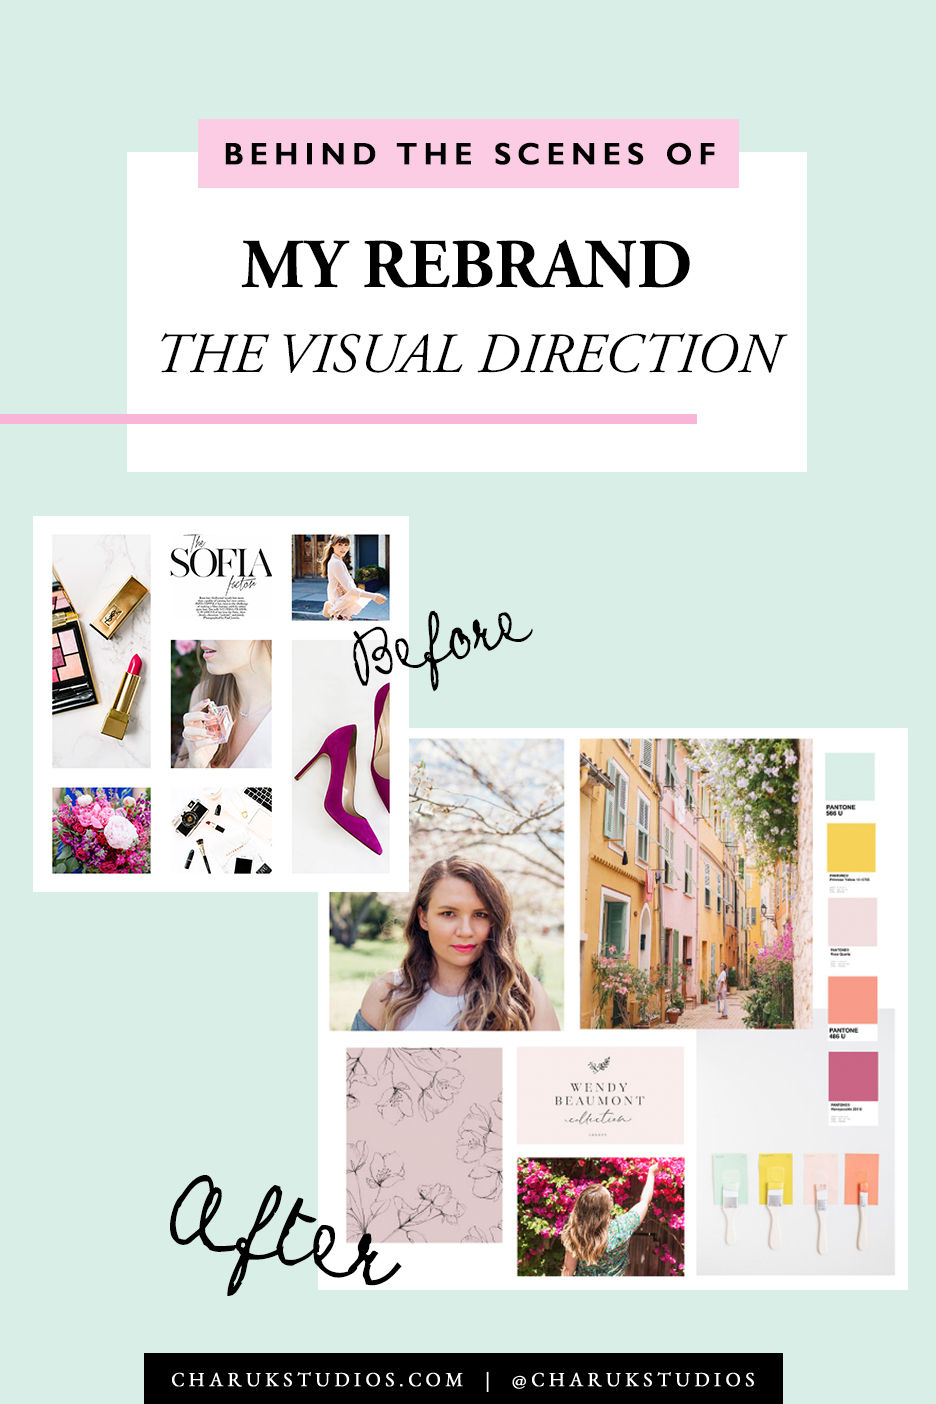 Behind the Scenes of My Rebrand: The Visual Direction by Charuk Studios